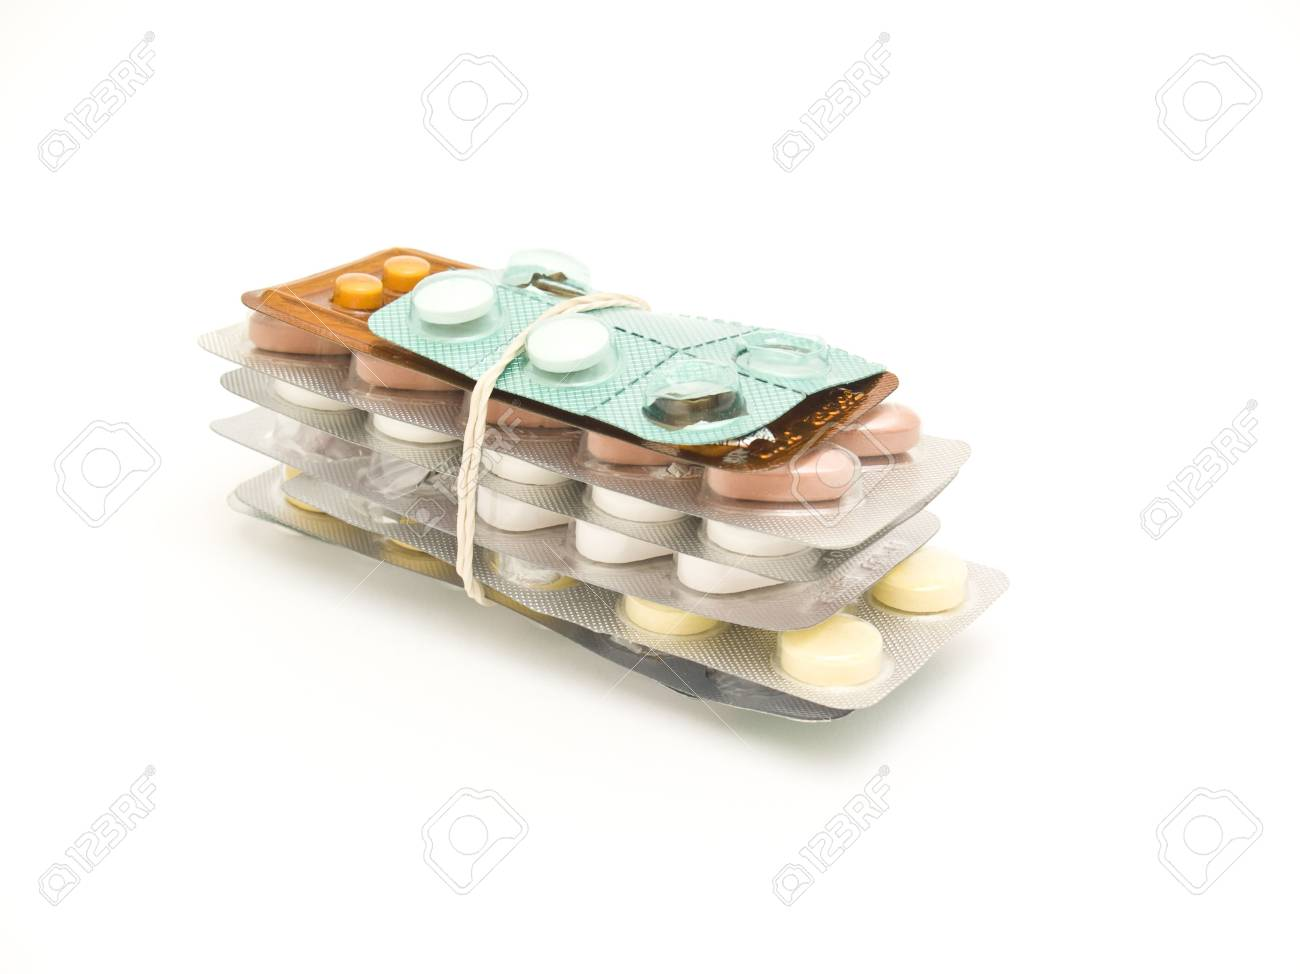 packs of medical pills and tablets Stock Photo - 4633524